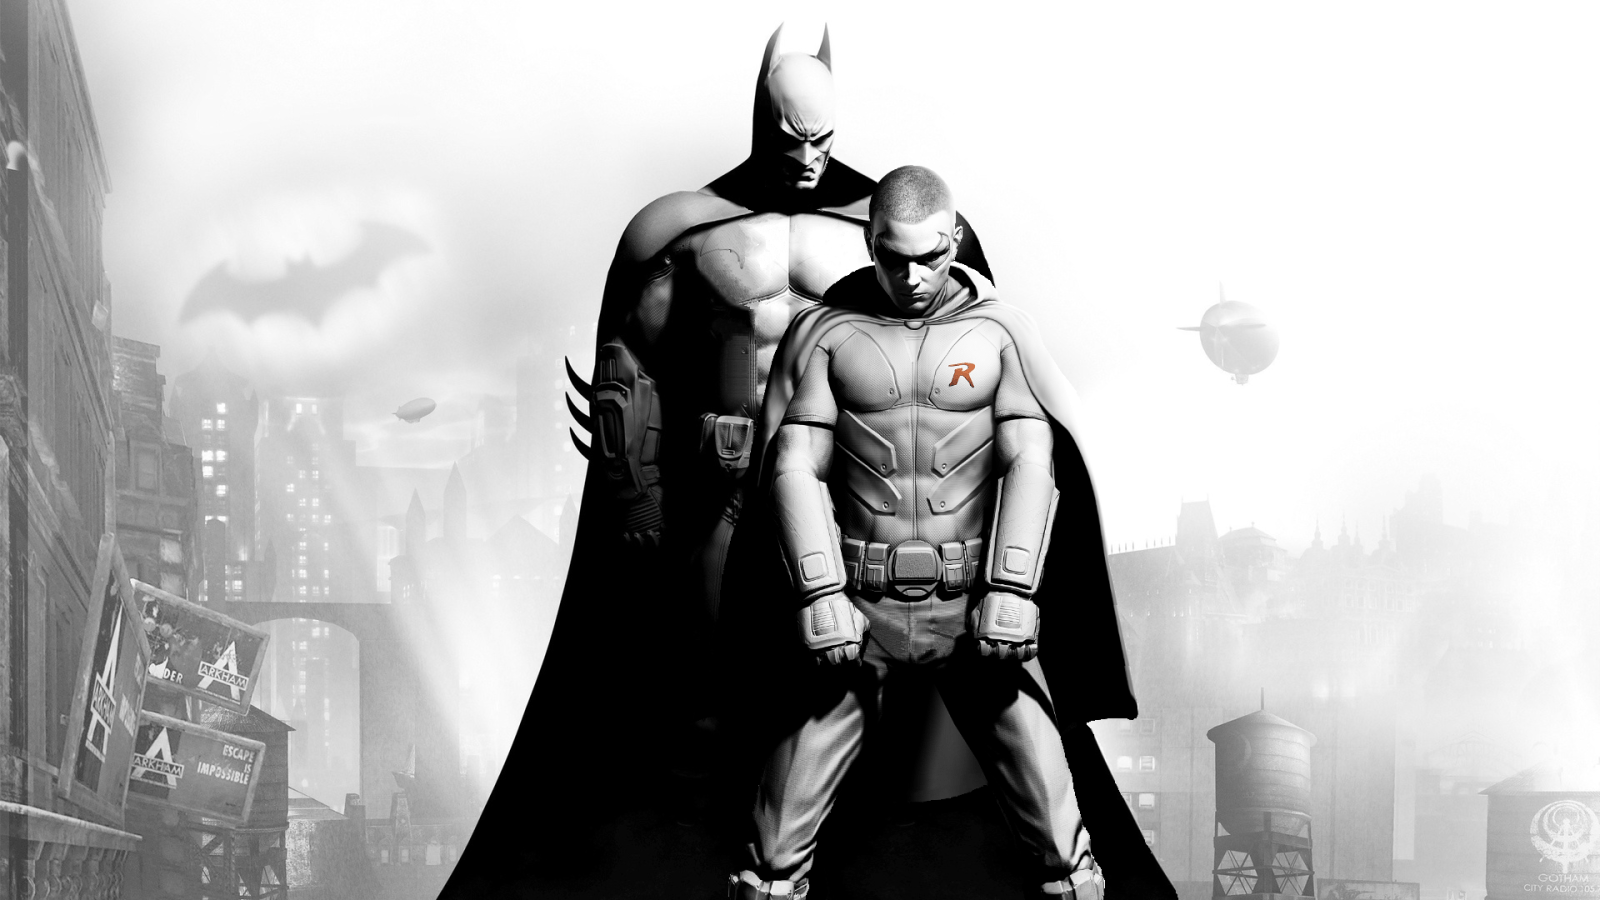 Batman And Robin Wallpapers, Batman And Robin Images 1366x768 px ...